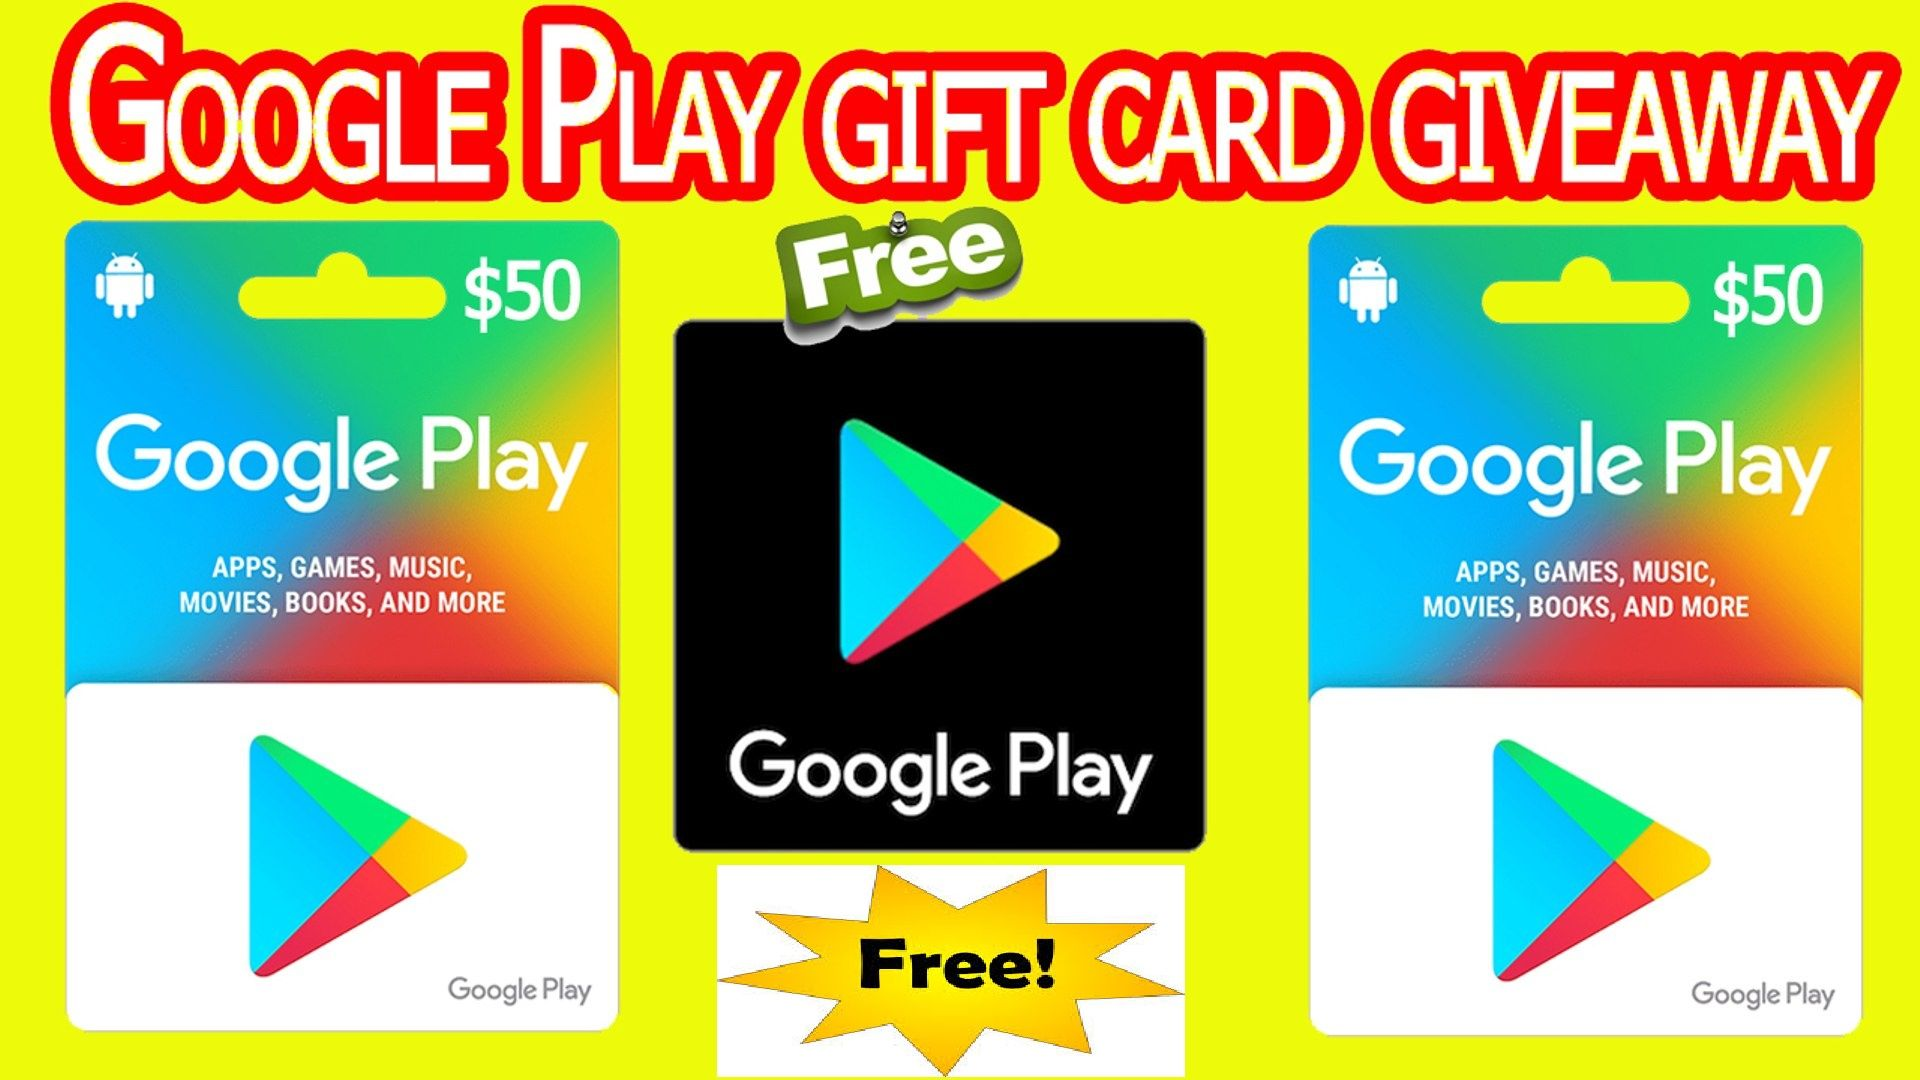 You Need To Follow Step On My Video 1 Go To Website 2 Select Gift Card 3 Select Value Of Card 4 A Google Play Gift Card Gift Card Template Gift Card Generator